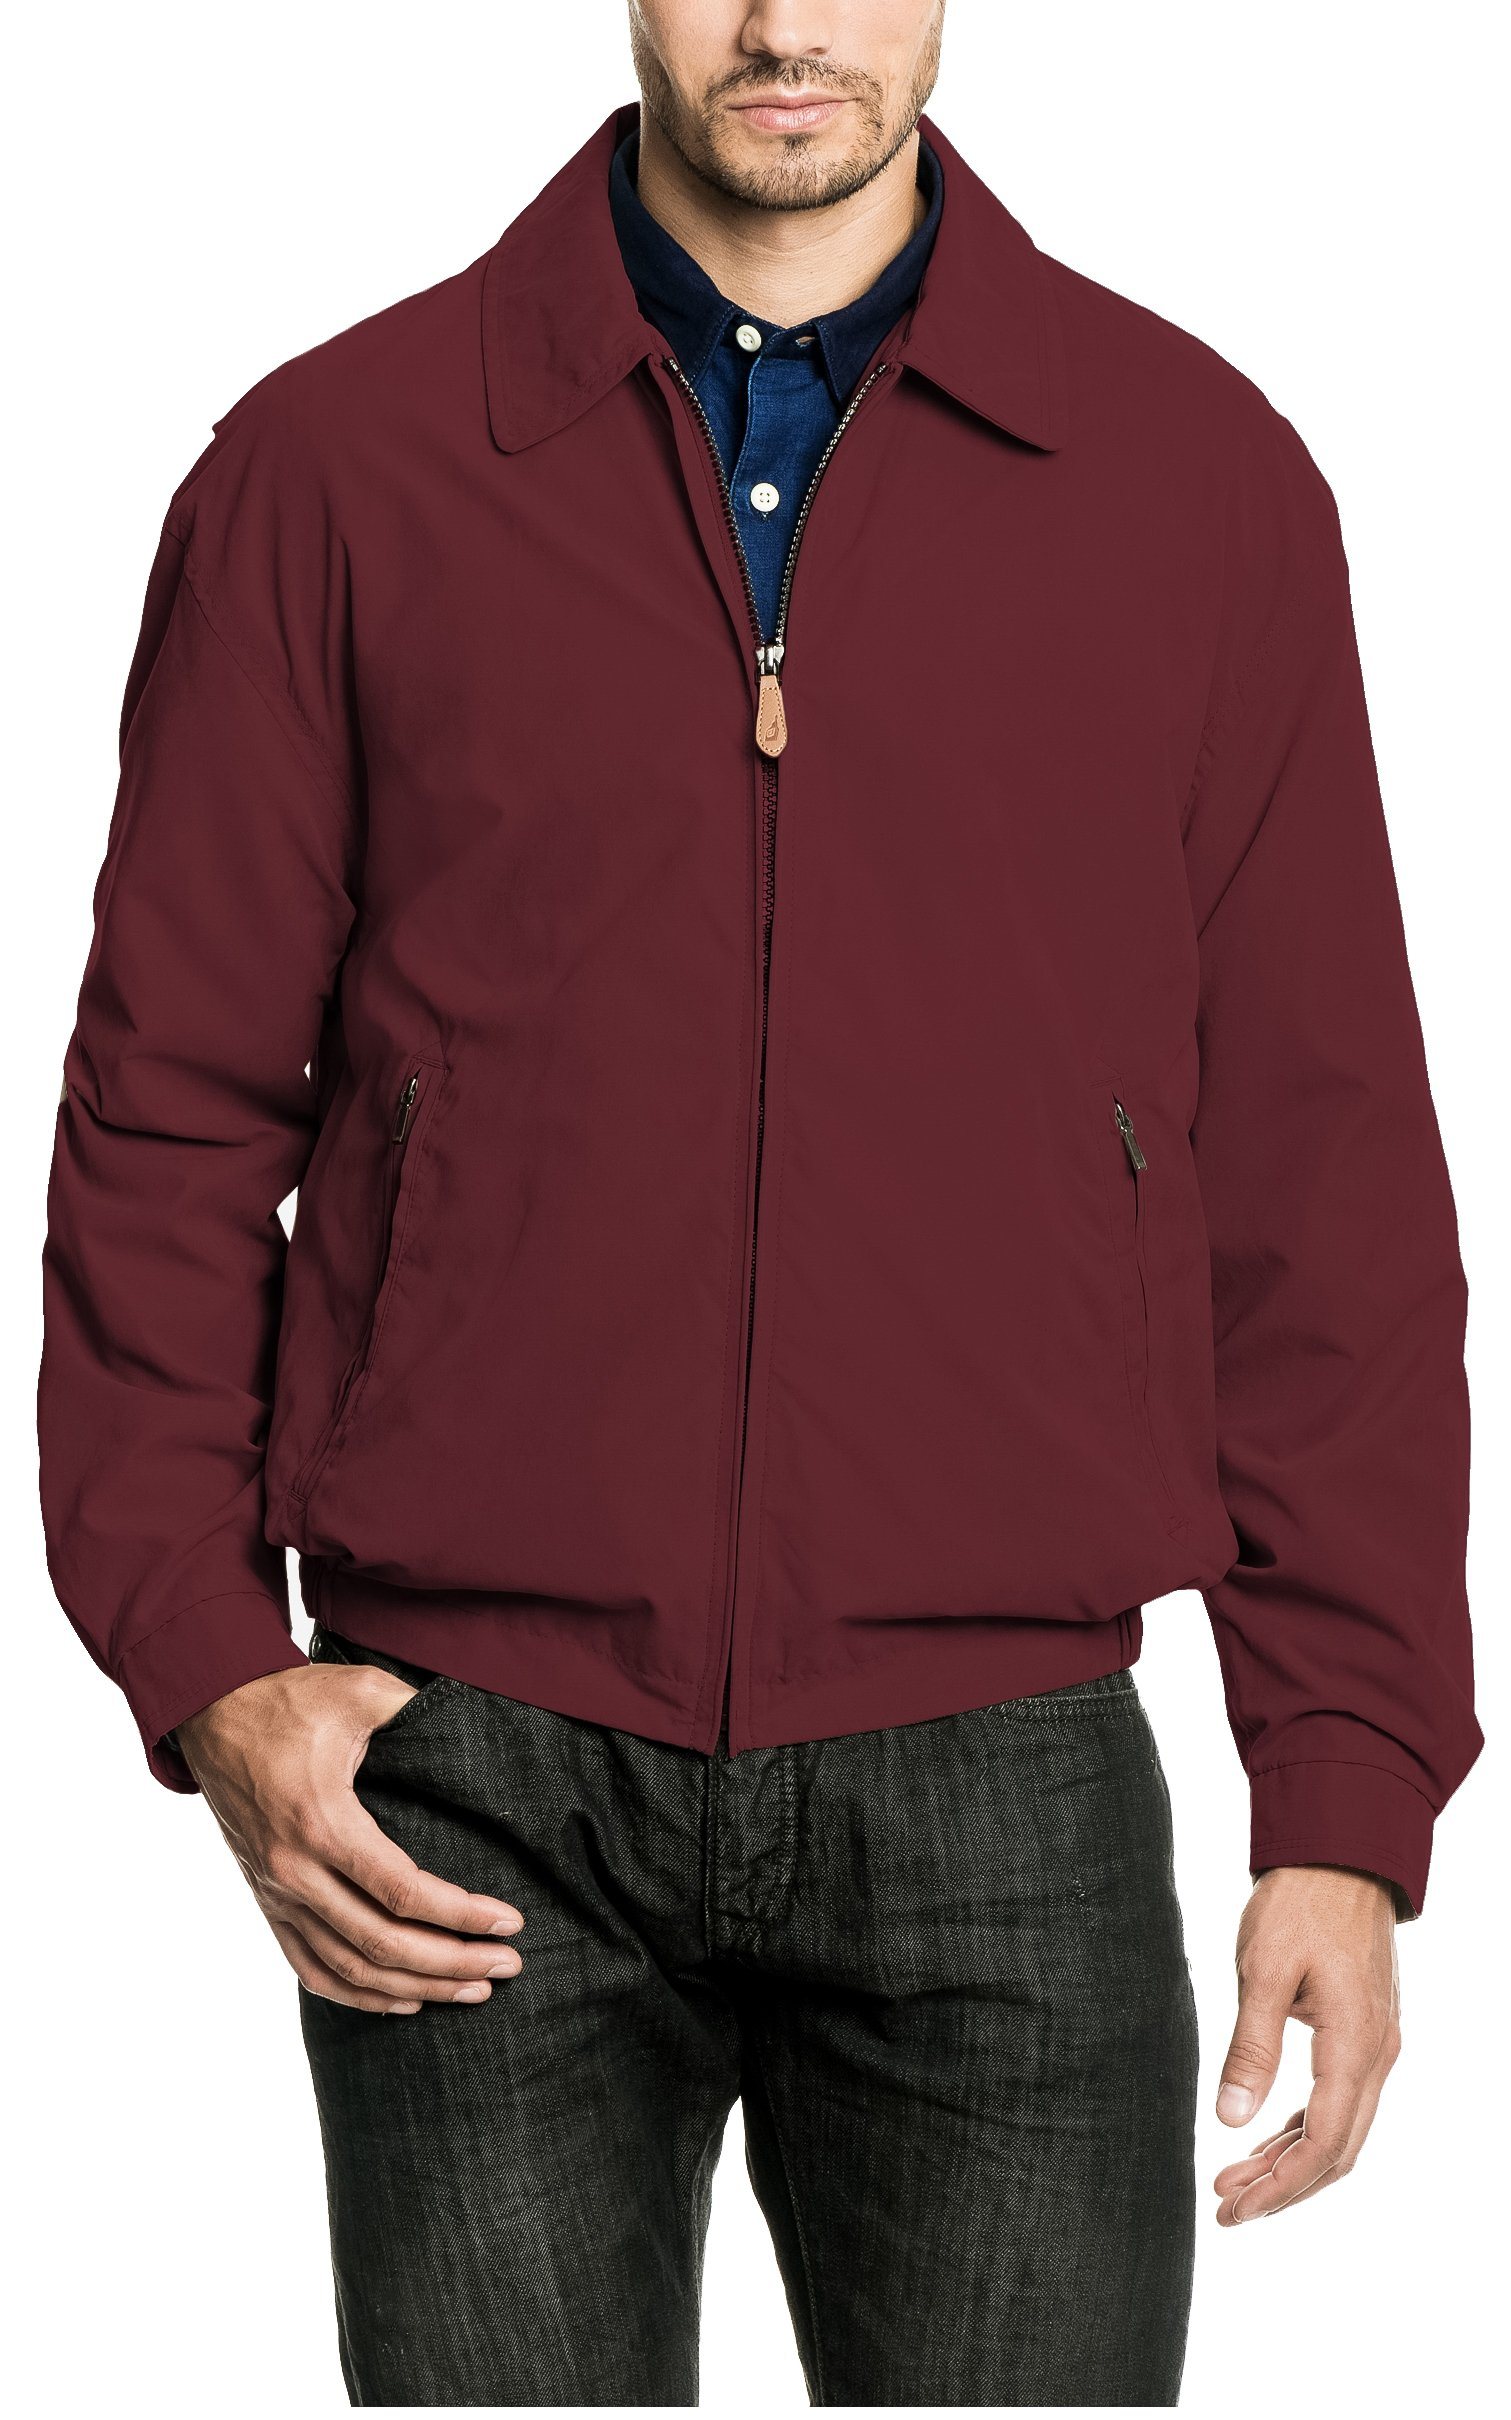 London Fog Men's Auburn Zip-Front Golf Jacket (Regular & Big-Tall Sizes), Burgundy, XX-Large by London Fog